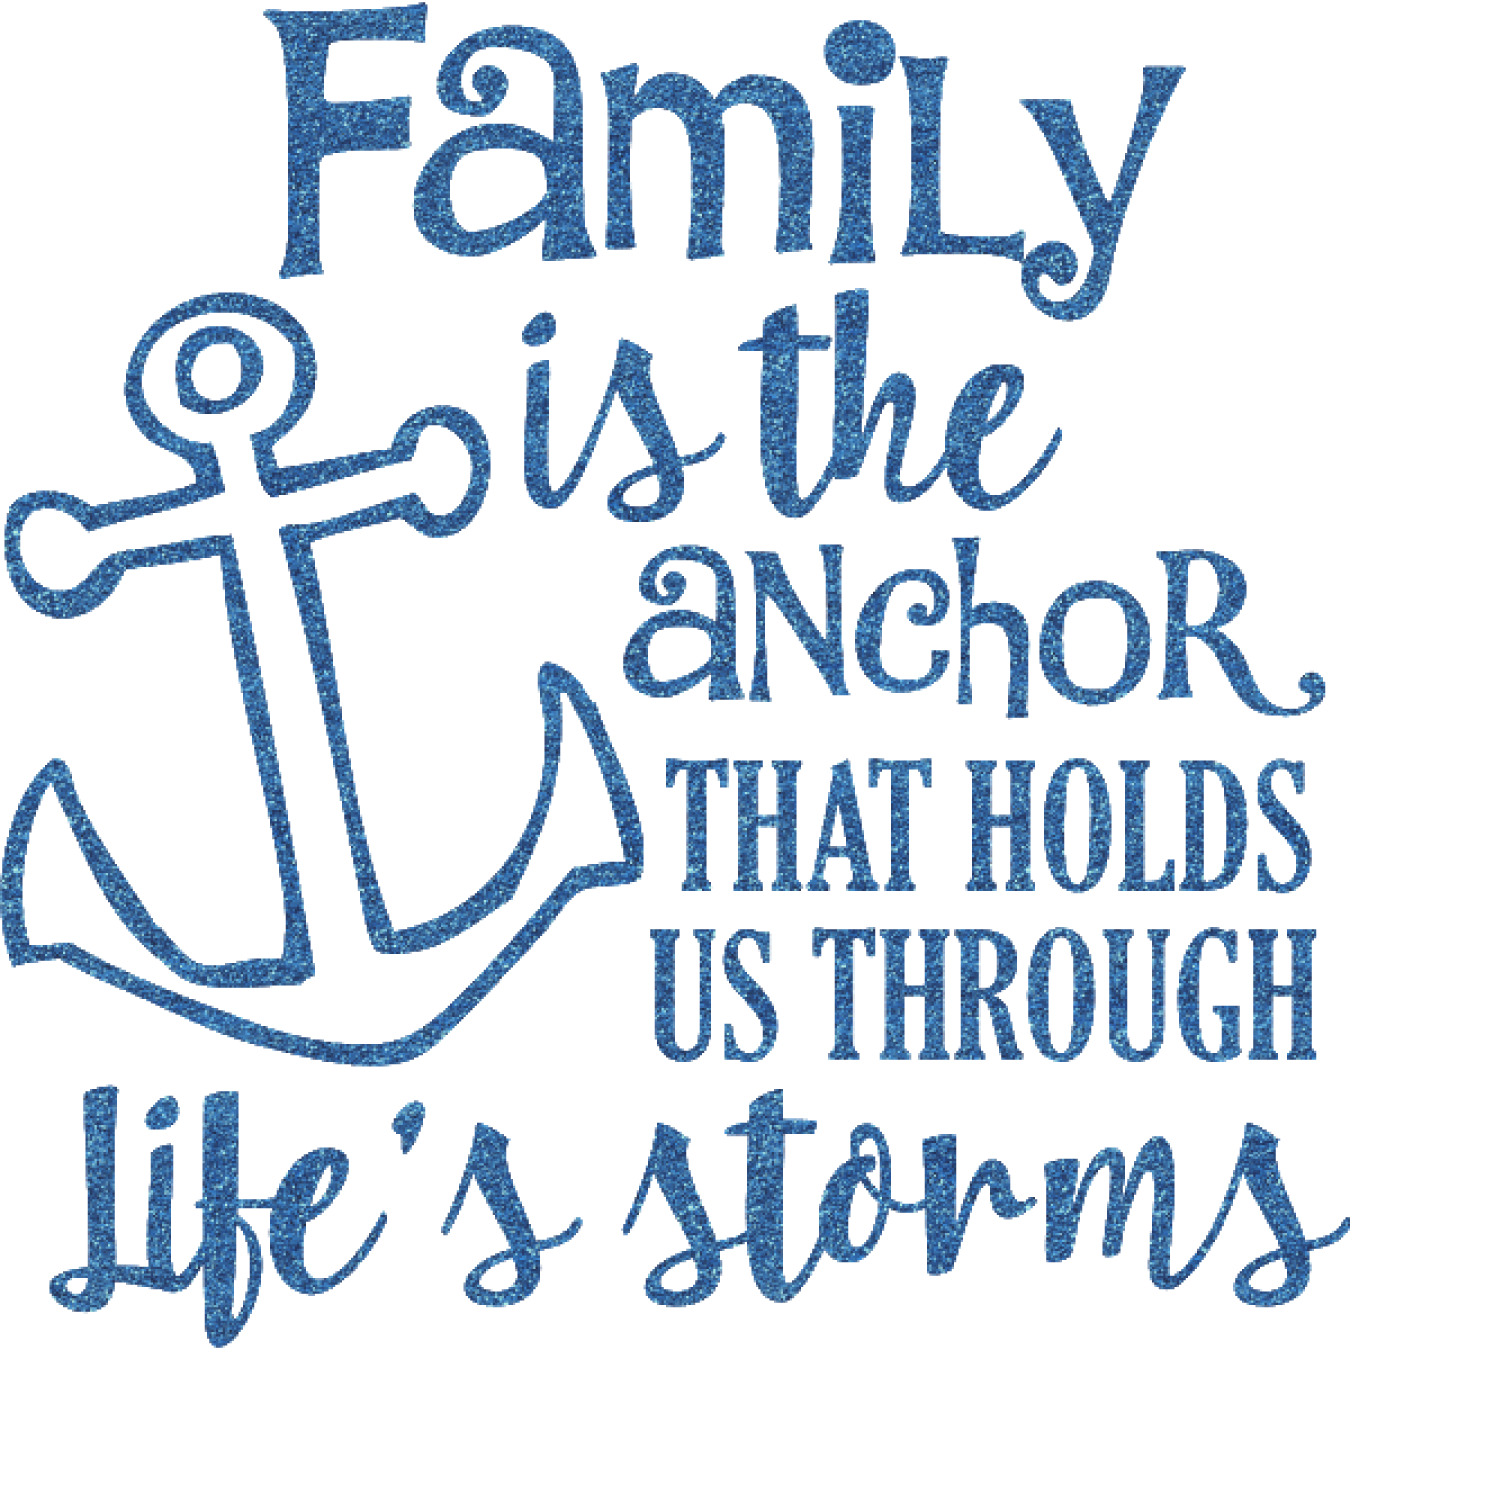 Quotes About Family: Family Quotes And Sayings Glitter Sticker Decal